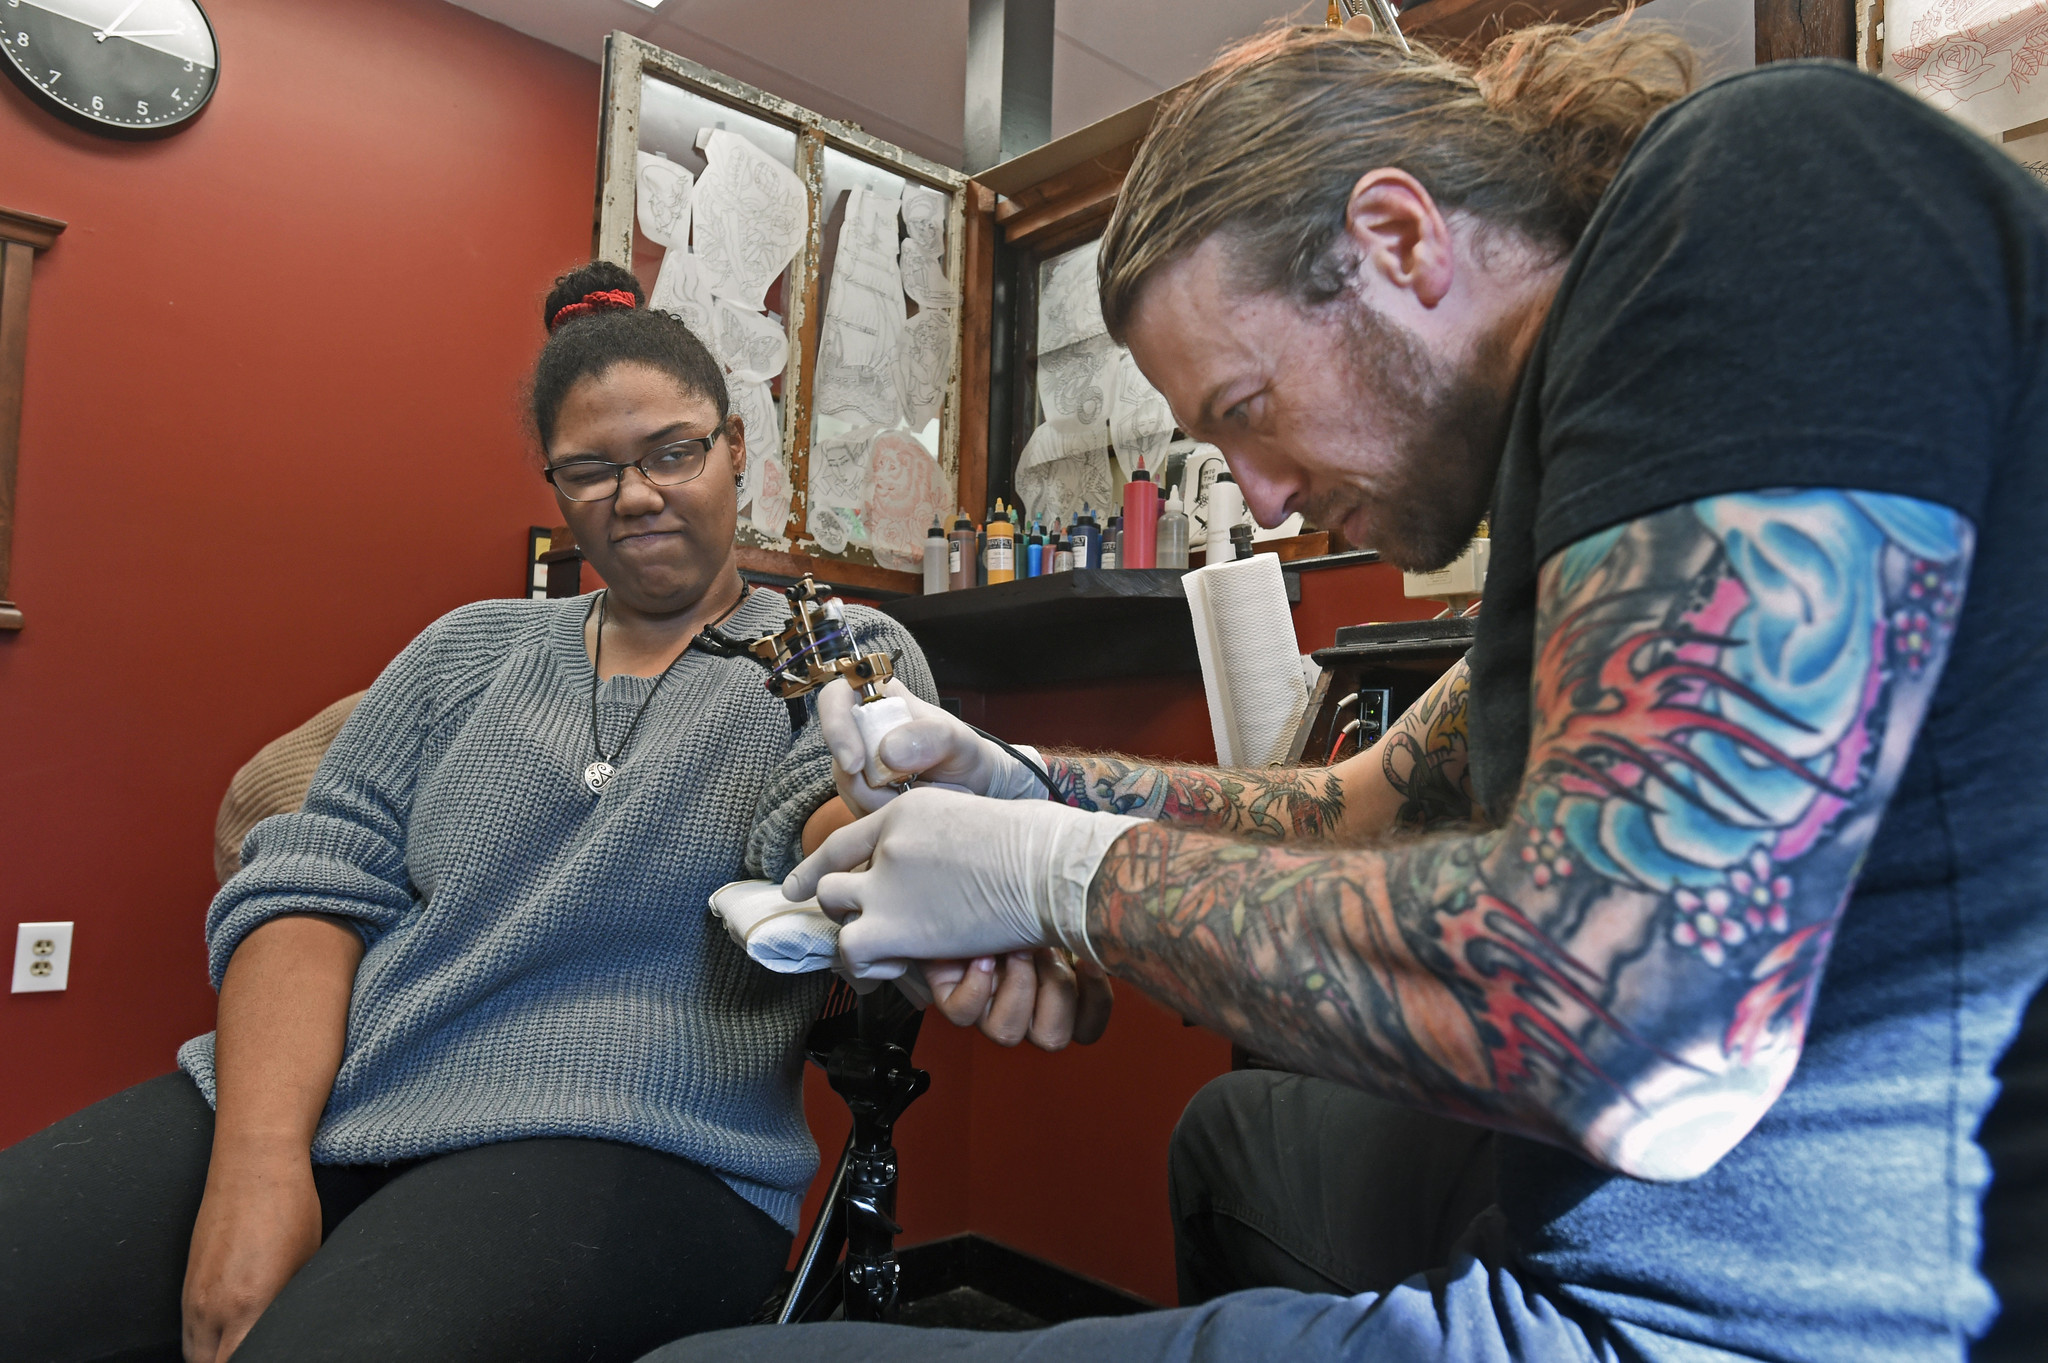 BARCS supporters get inked at Baltimore Tattoo Museum - Baltimore Sun